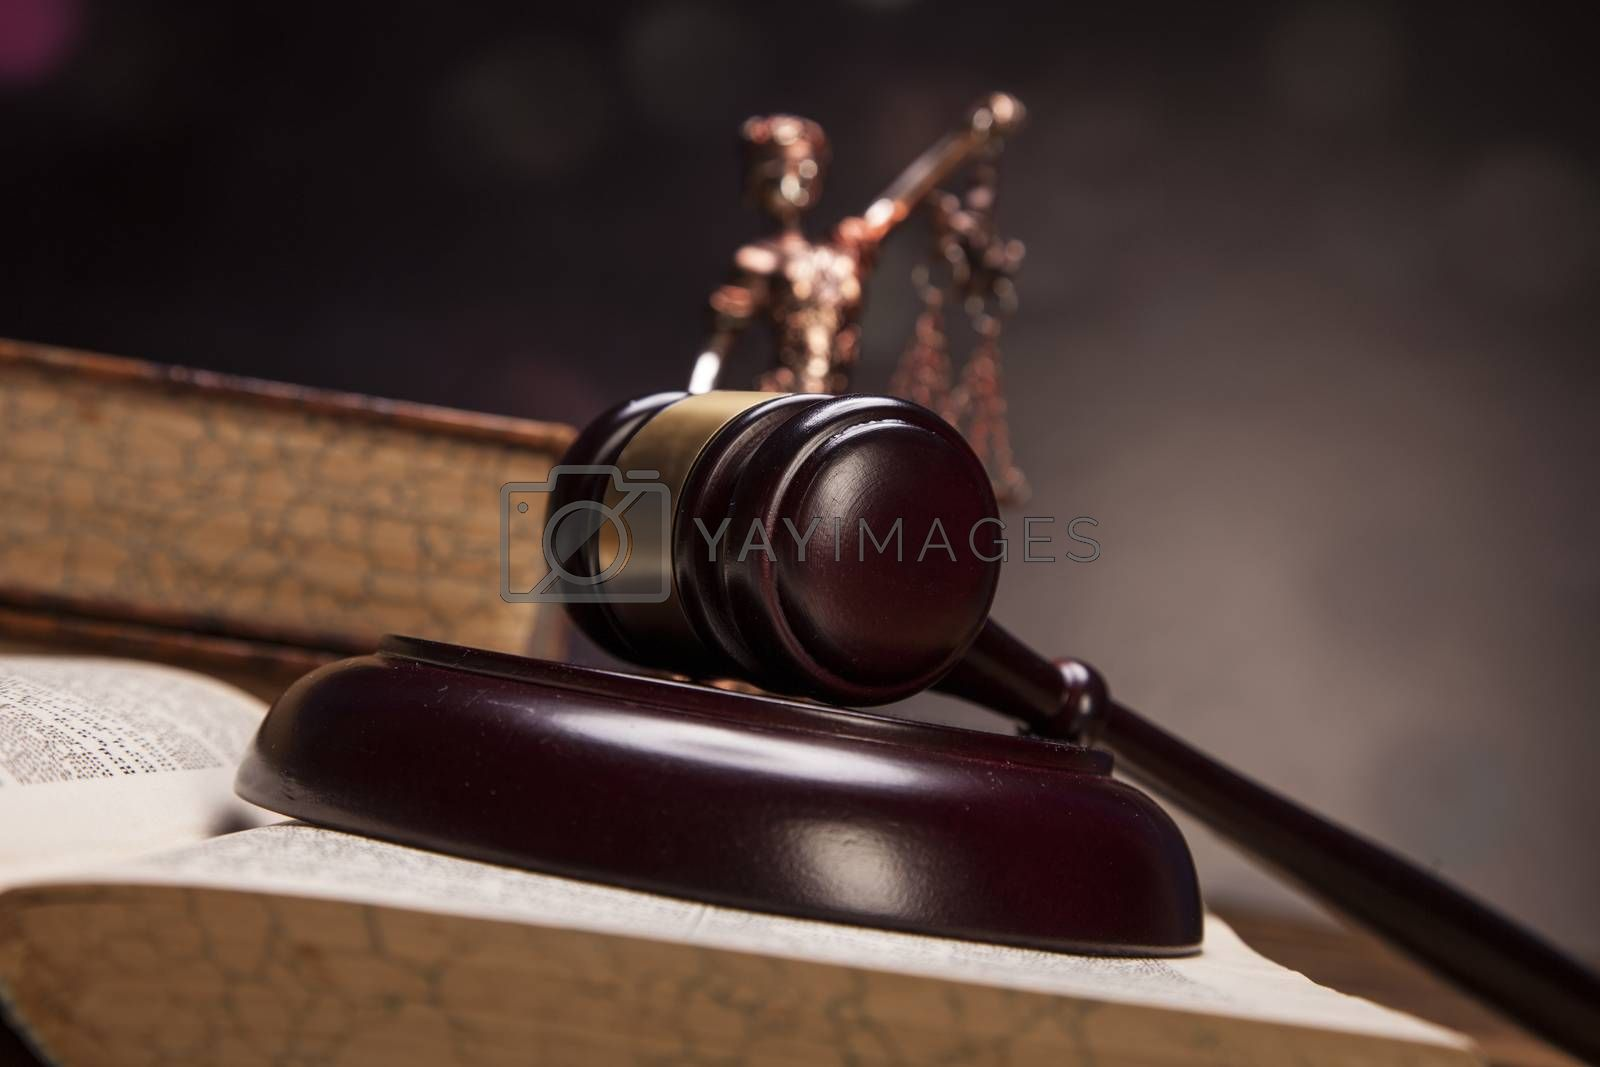 Scales of justice and gavel on desk with dark background by fikmik